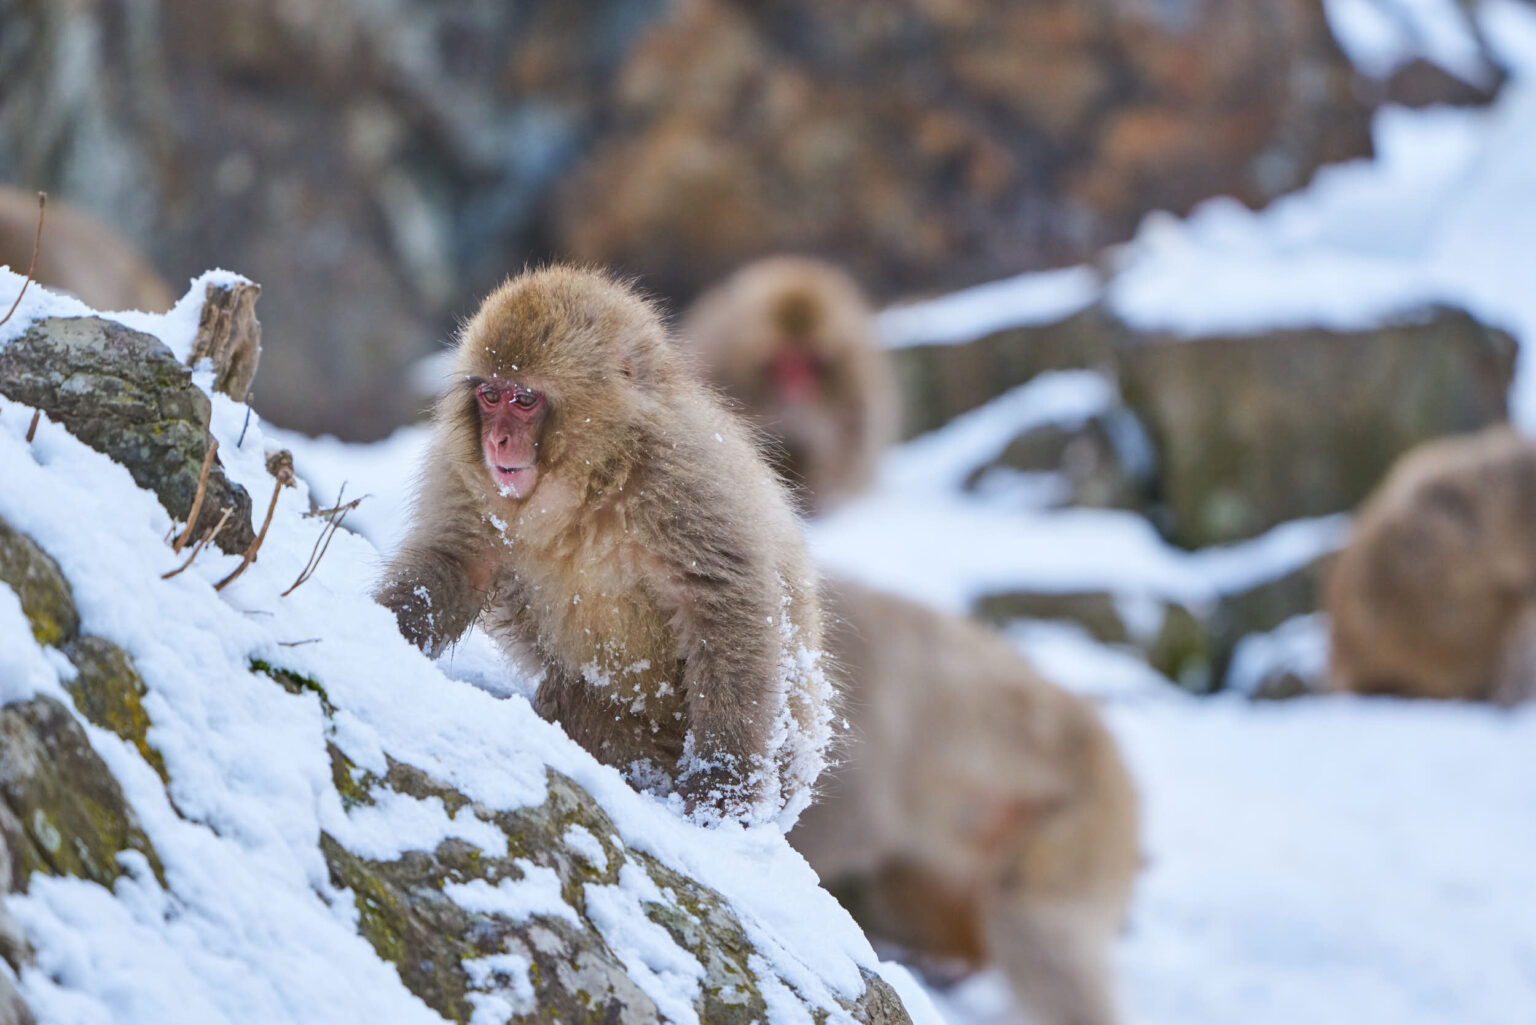 A macaque plays in Japan's Snow Monkey Park